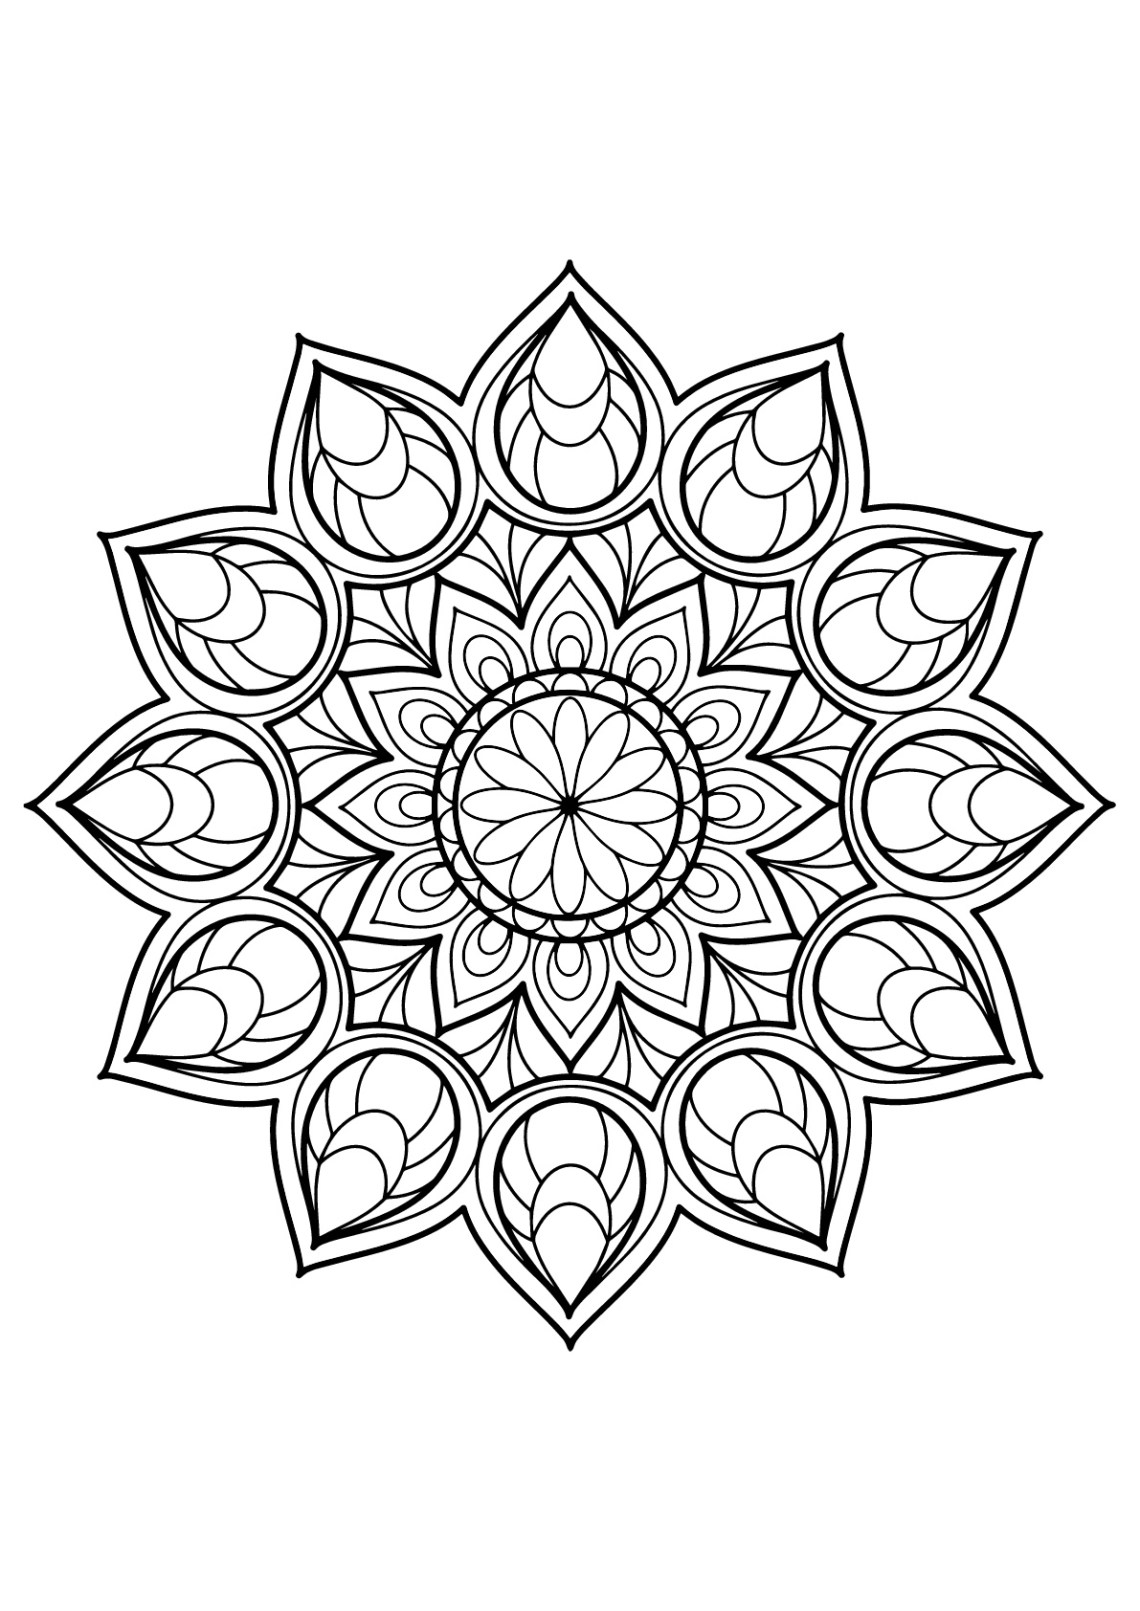 Mandala from free coloring books for adults 9 - M&alas ...   free printable mandala coloring pages for adults